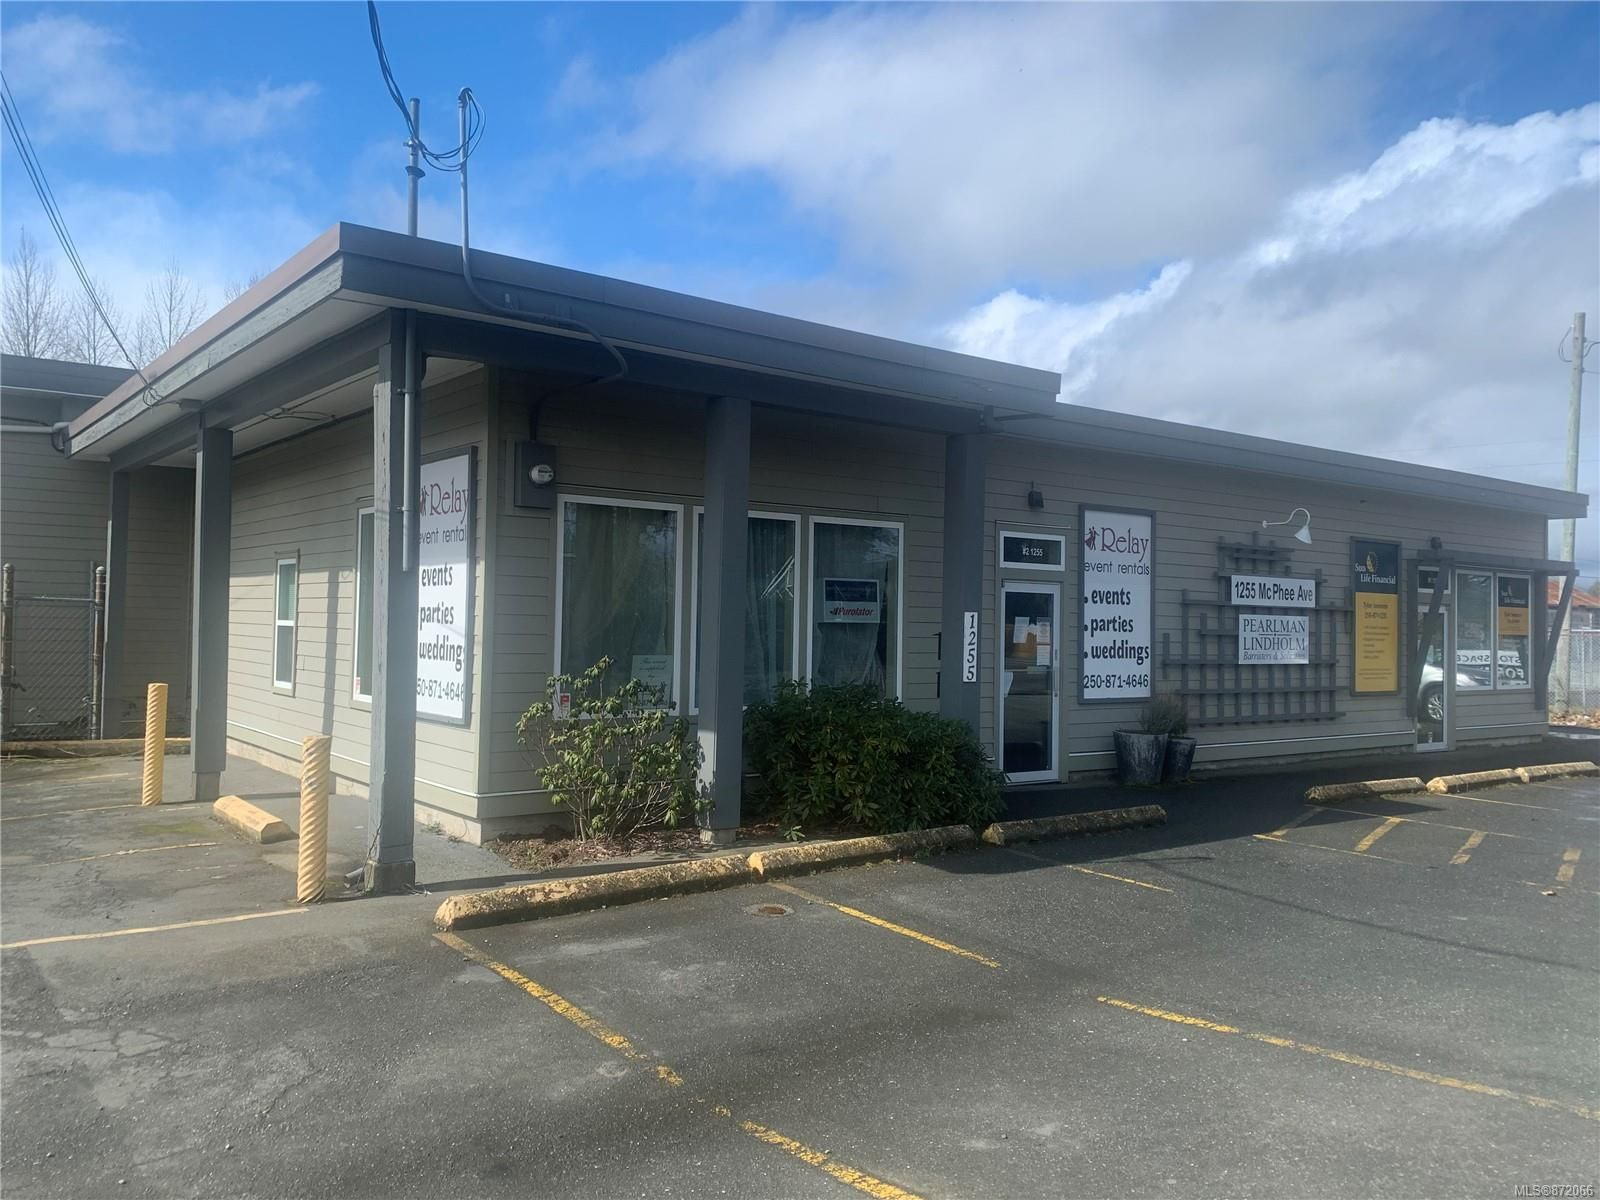 Main Photo: 1255 McPhee Ave in : CV Courtenay City Industrial for sale (Comox Valley)  : MLS®# 872066